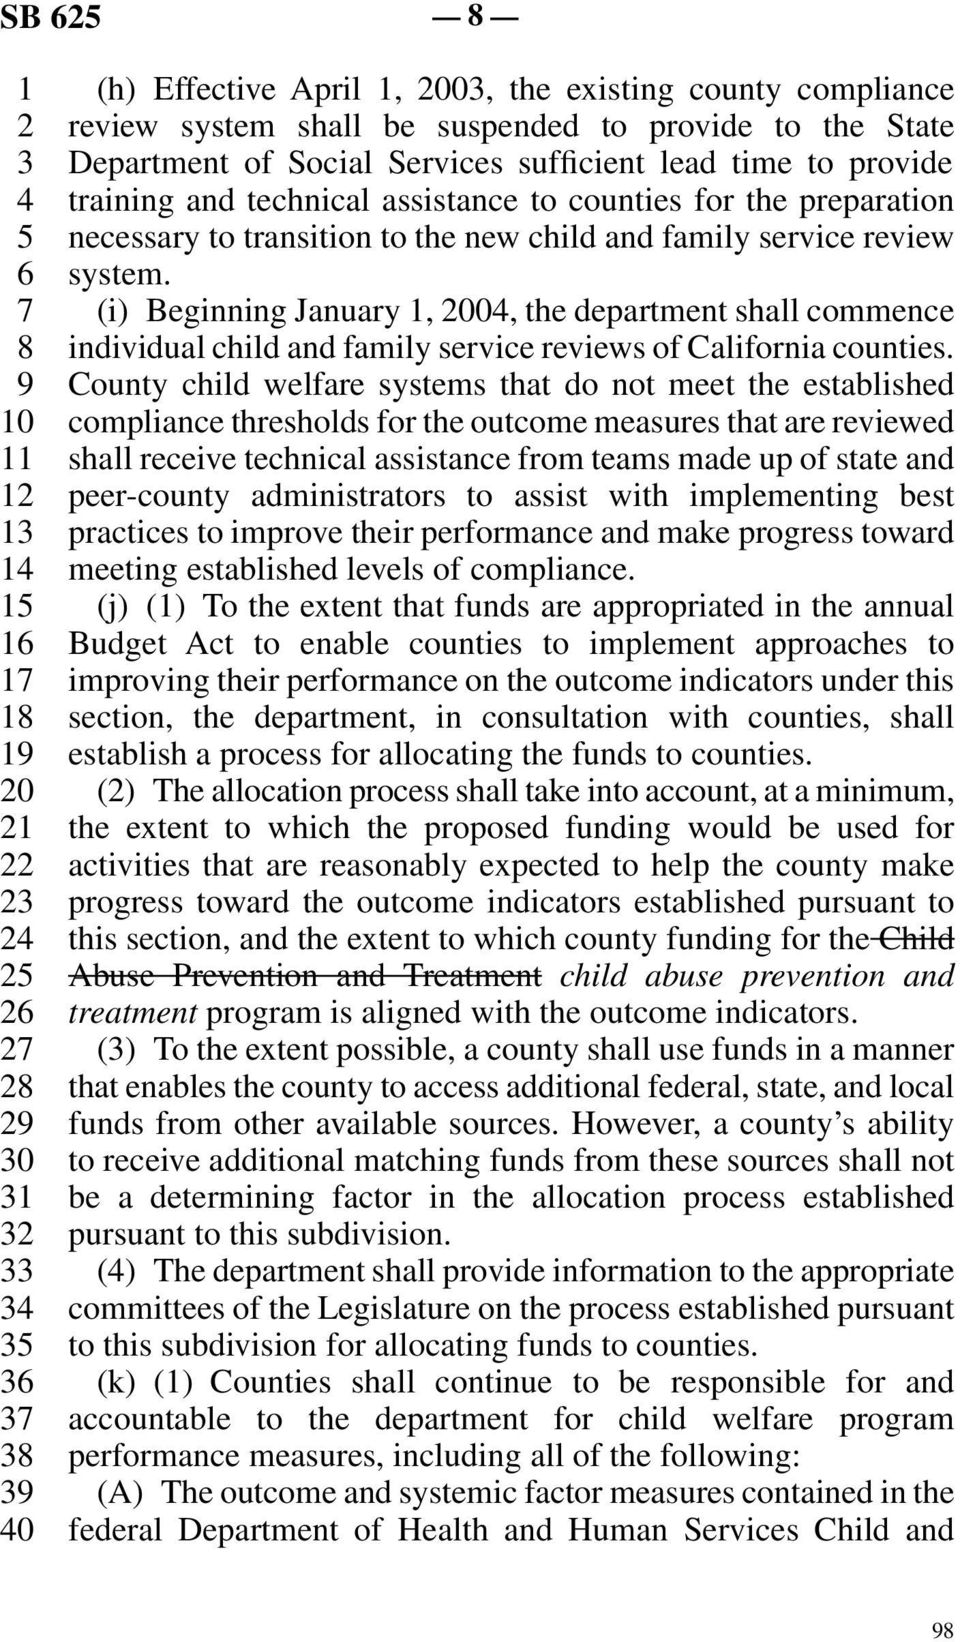 line 7 (i) Beginning January 1, 2004, the department shall commence line 8 individual child and family service reviews of California counties.